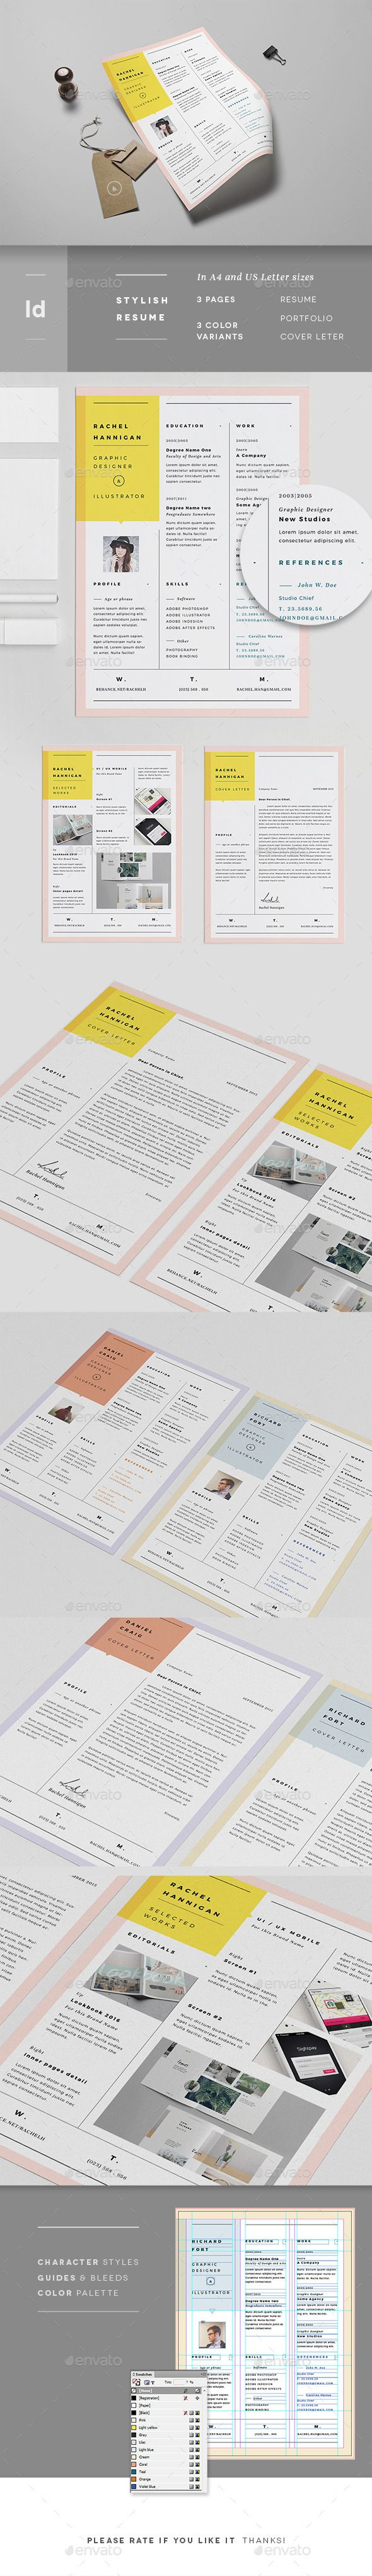 3 Pages Minimal Resume Portfolio & Letter - Resumes Stationery